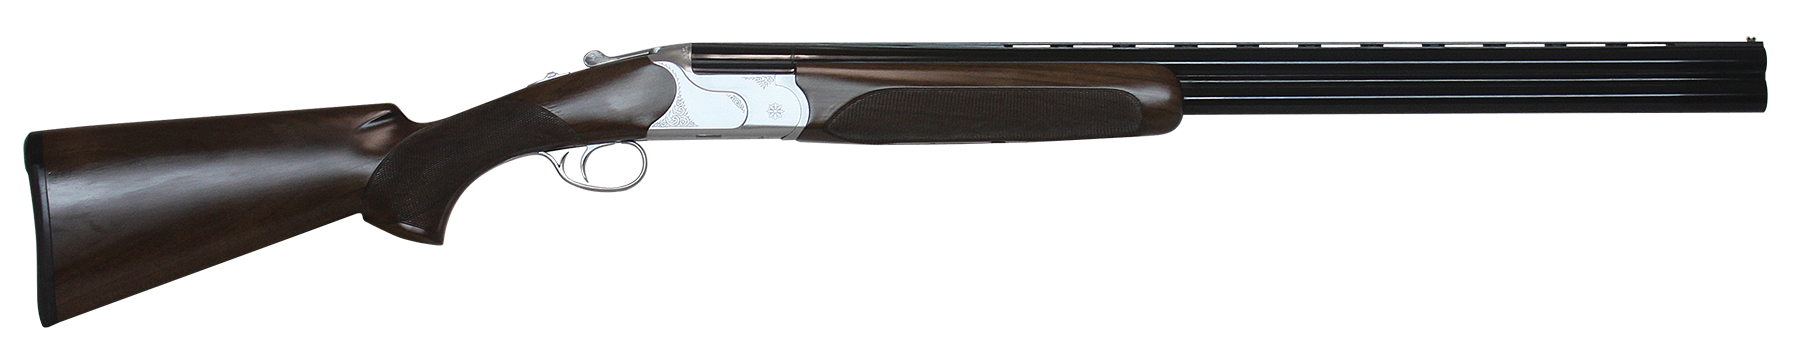 CZ-USA Redhead Premier Over/Under Shotgun 3'' 20 Gauge 26'' Silver - Turkish Walnut